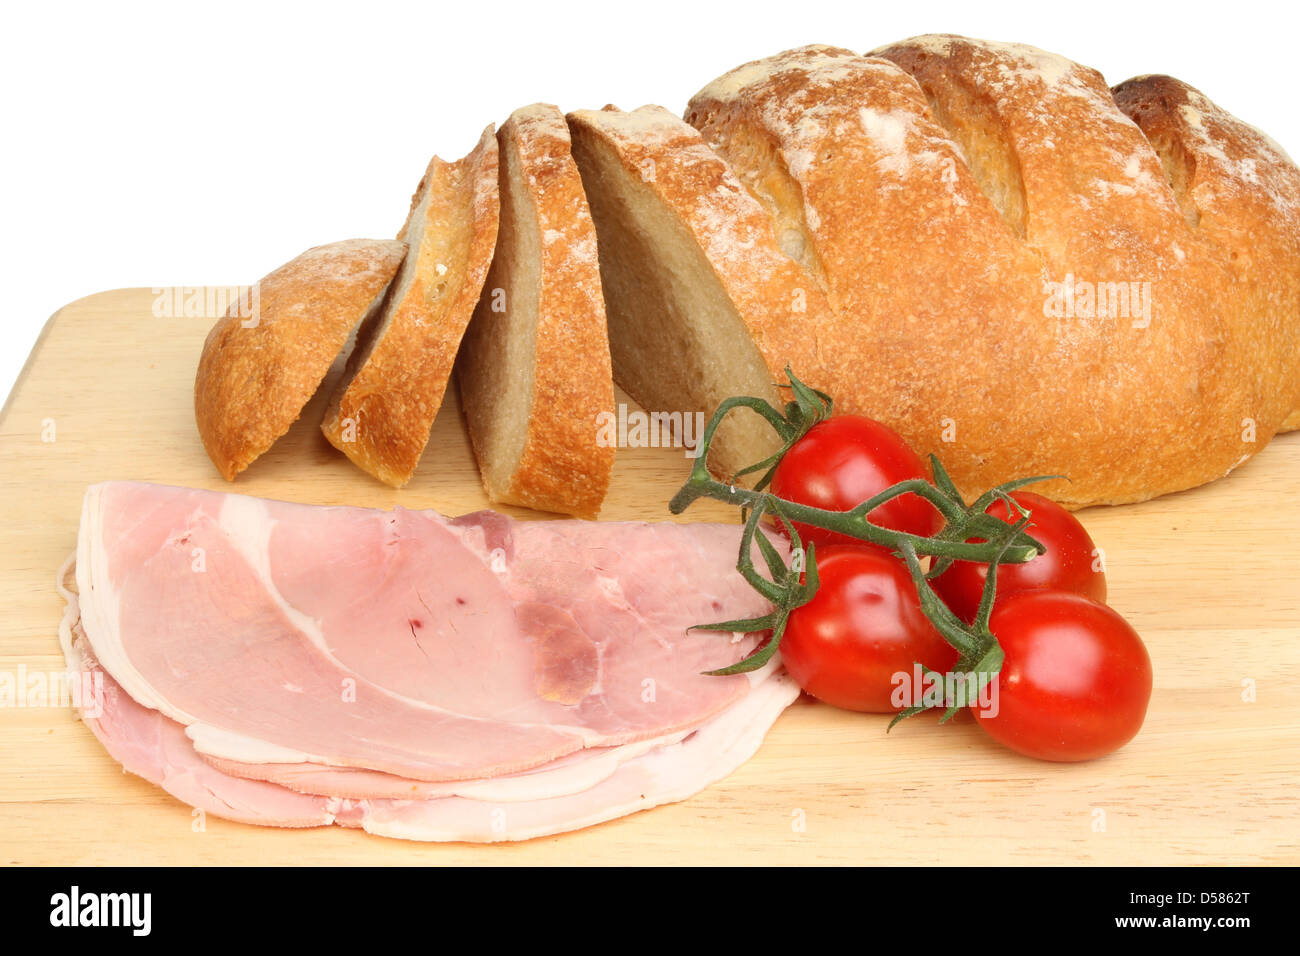 Freshly baked bloomer bread loaf with ham and tomatoes on a wooden board - Stock Image